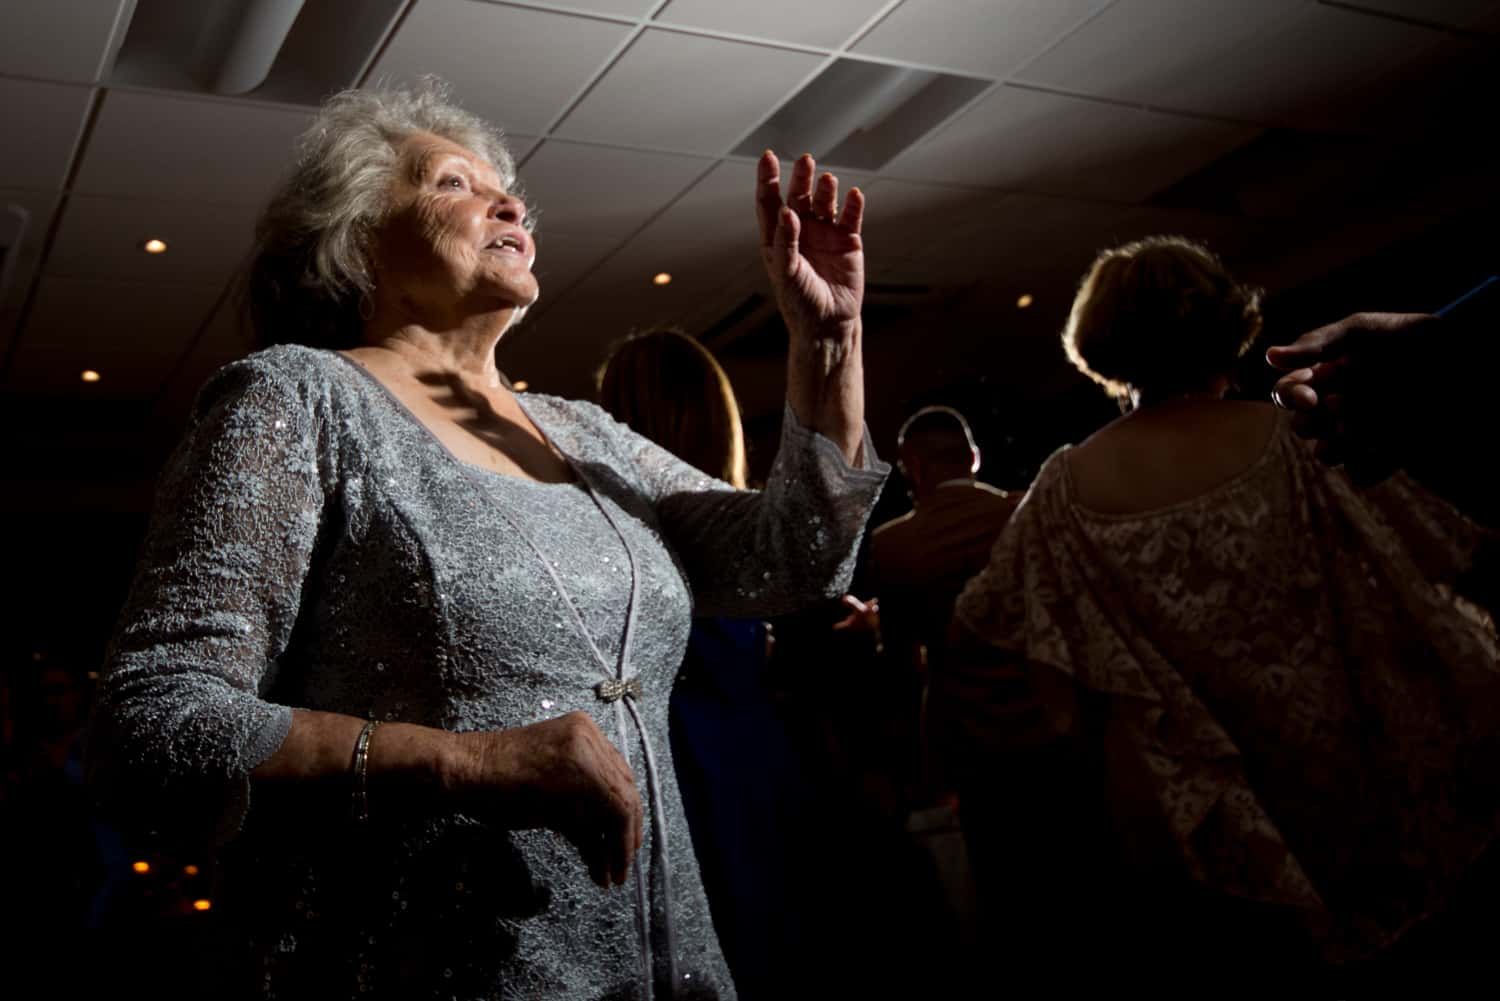 Grandmother of bride dancing during wedding reception